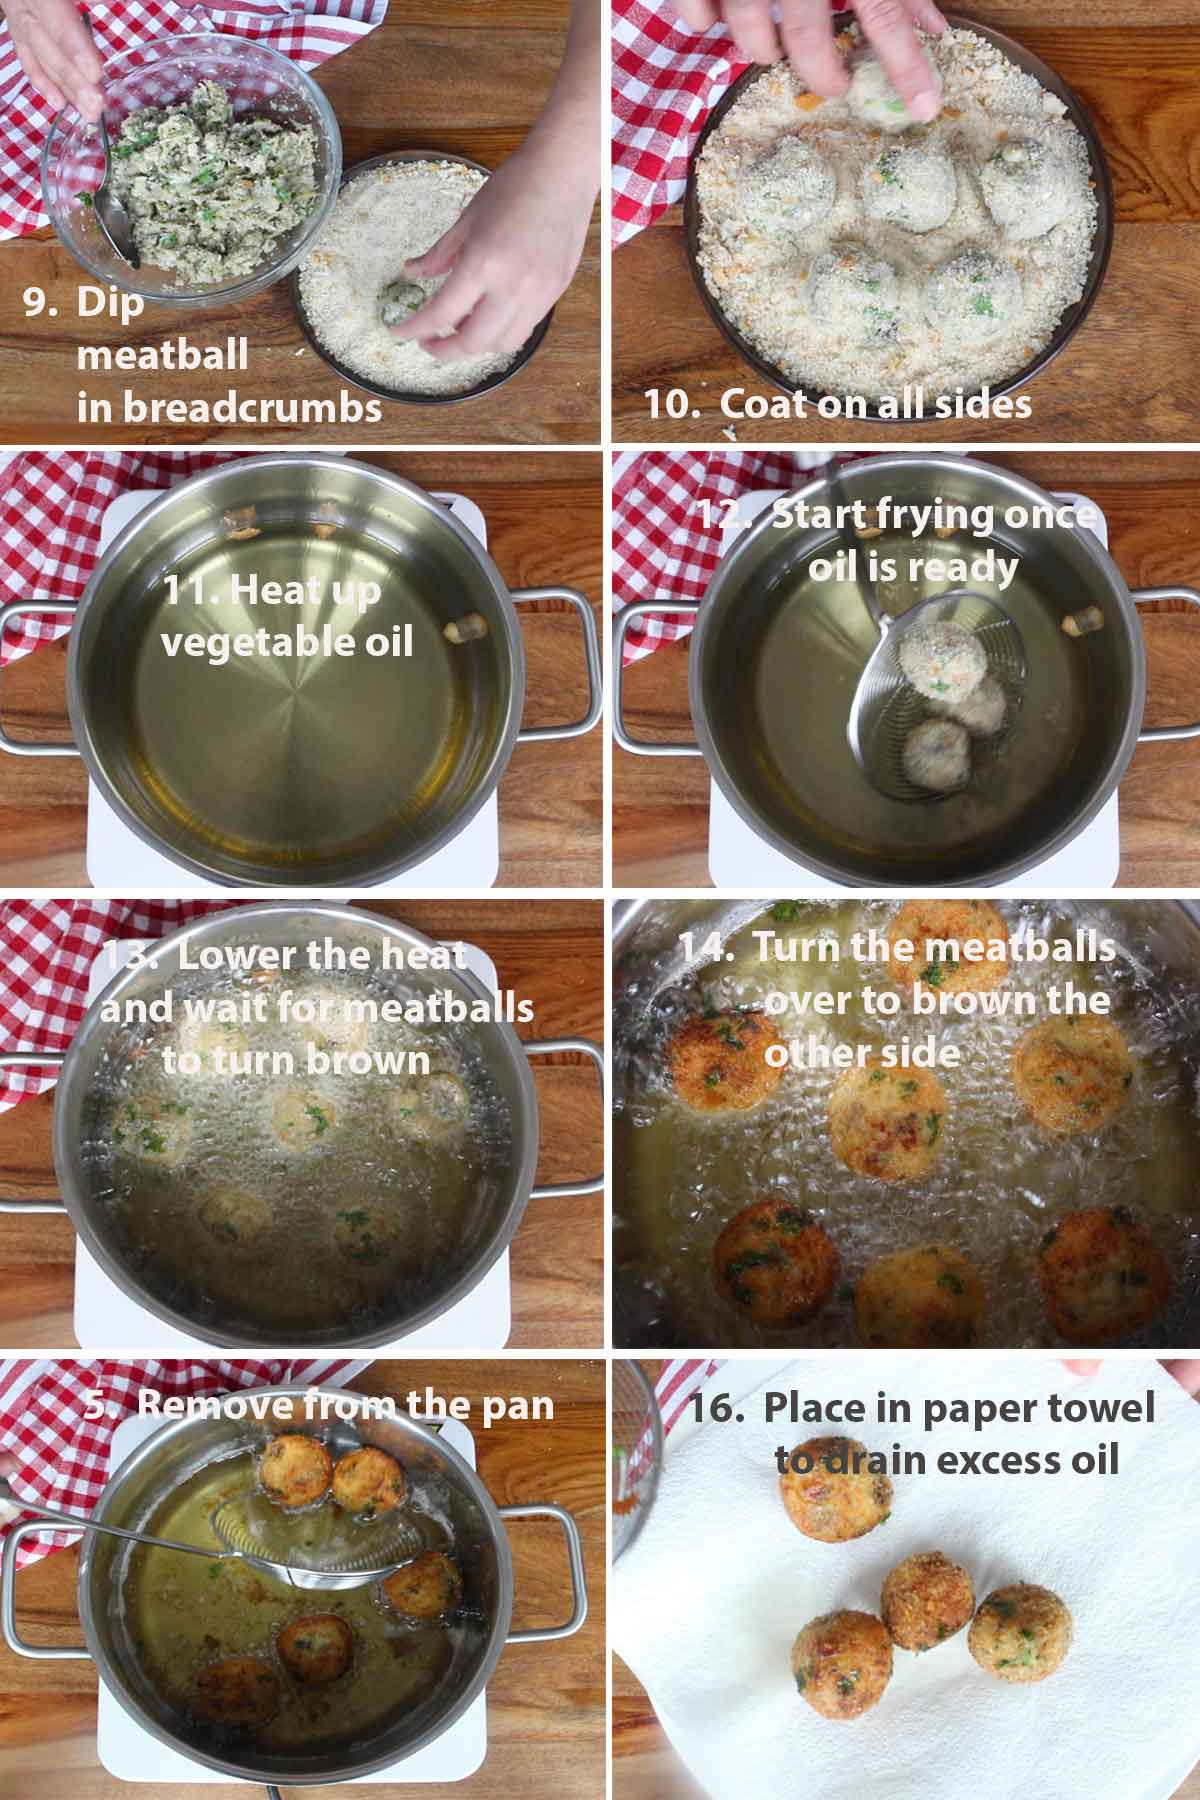 Last part of the collage of images showing the step by step process on how to make Neapolitan Eggplant Meatballs.